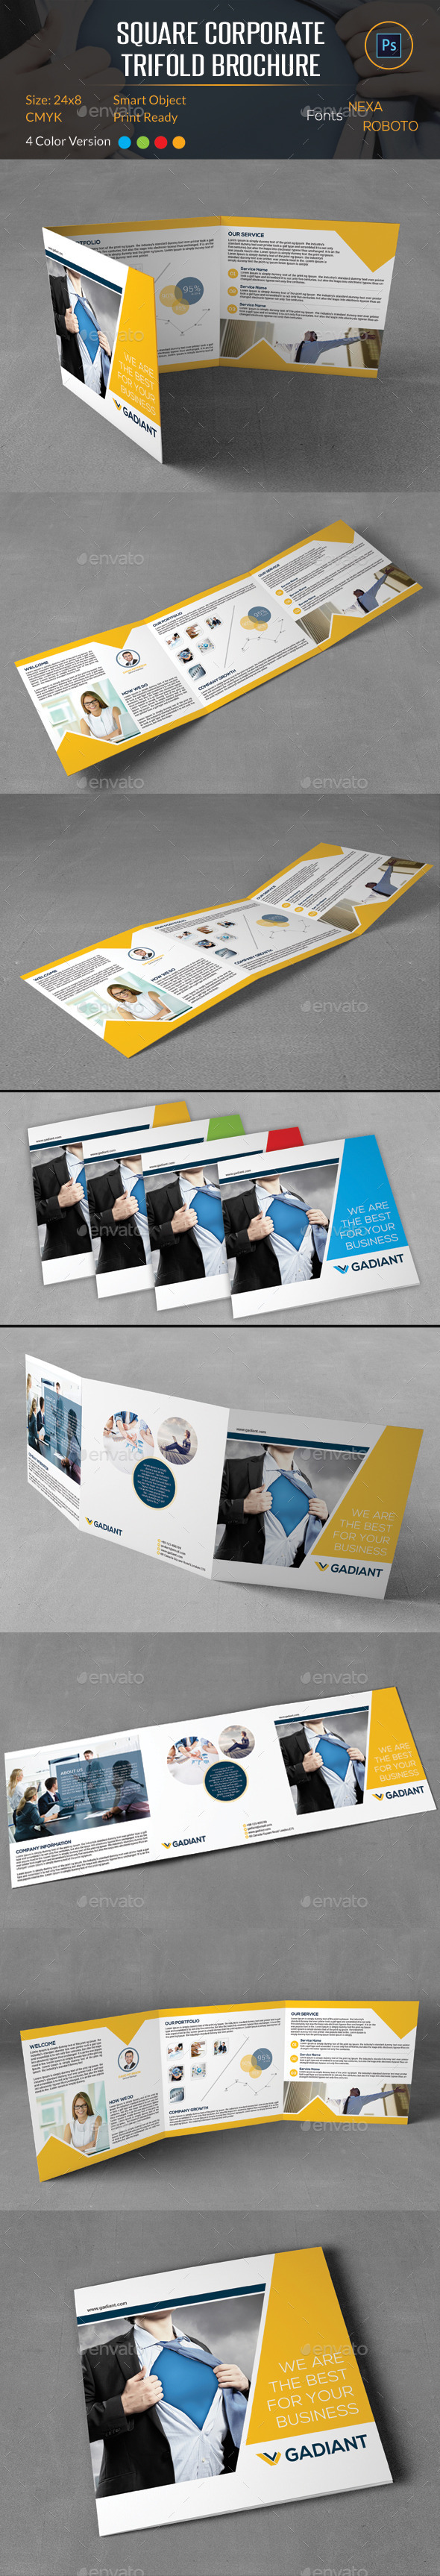 GraphicRiver Square Corporate Trifold Brochure 10134180